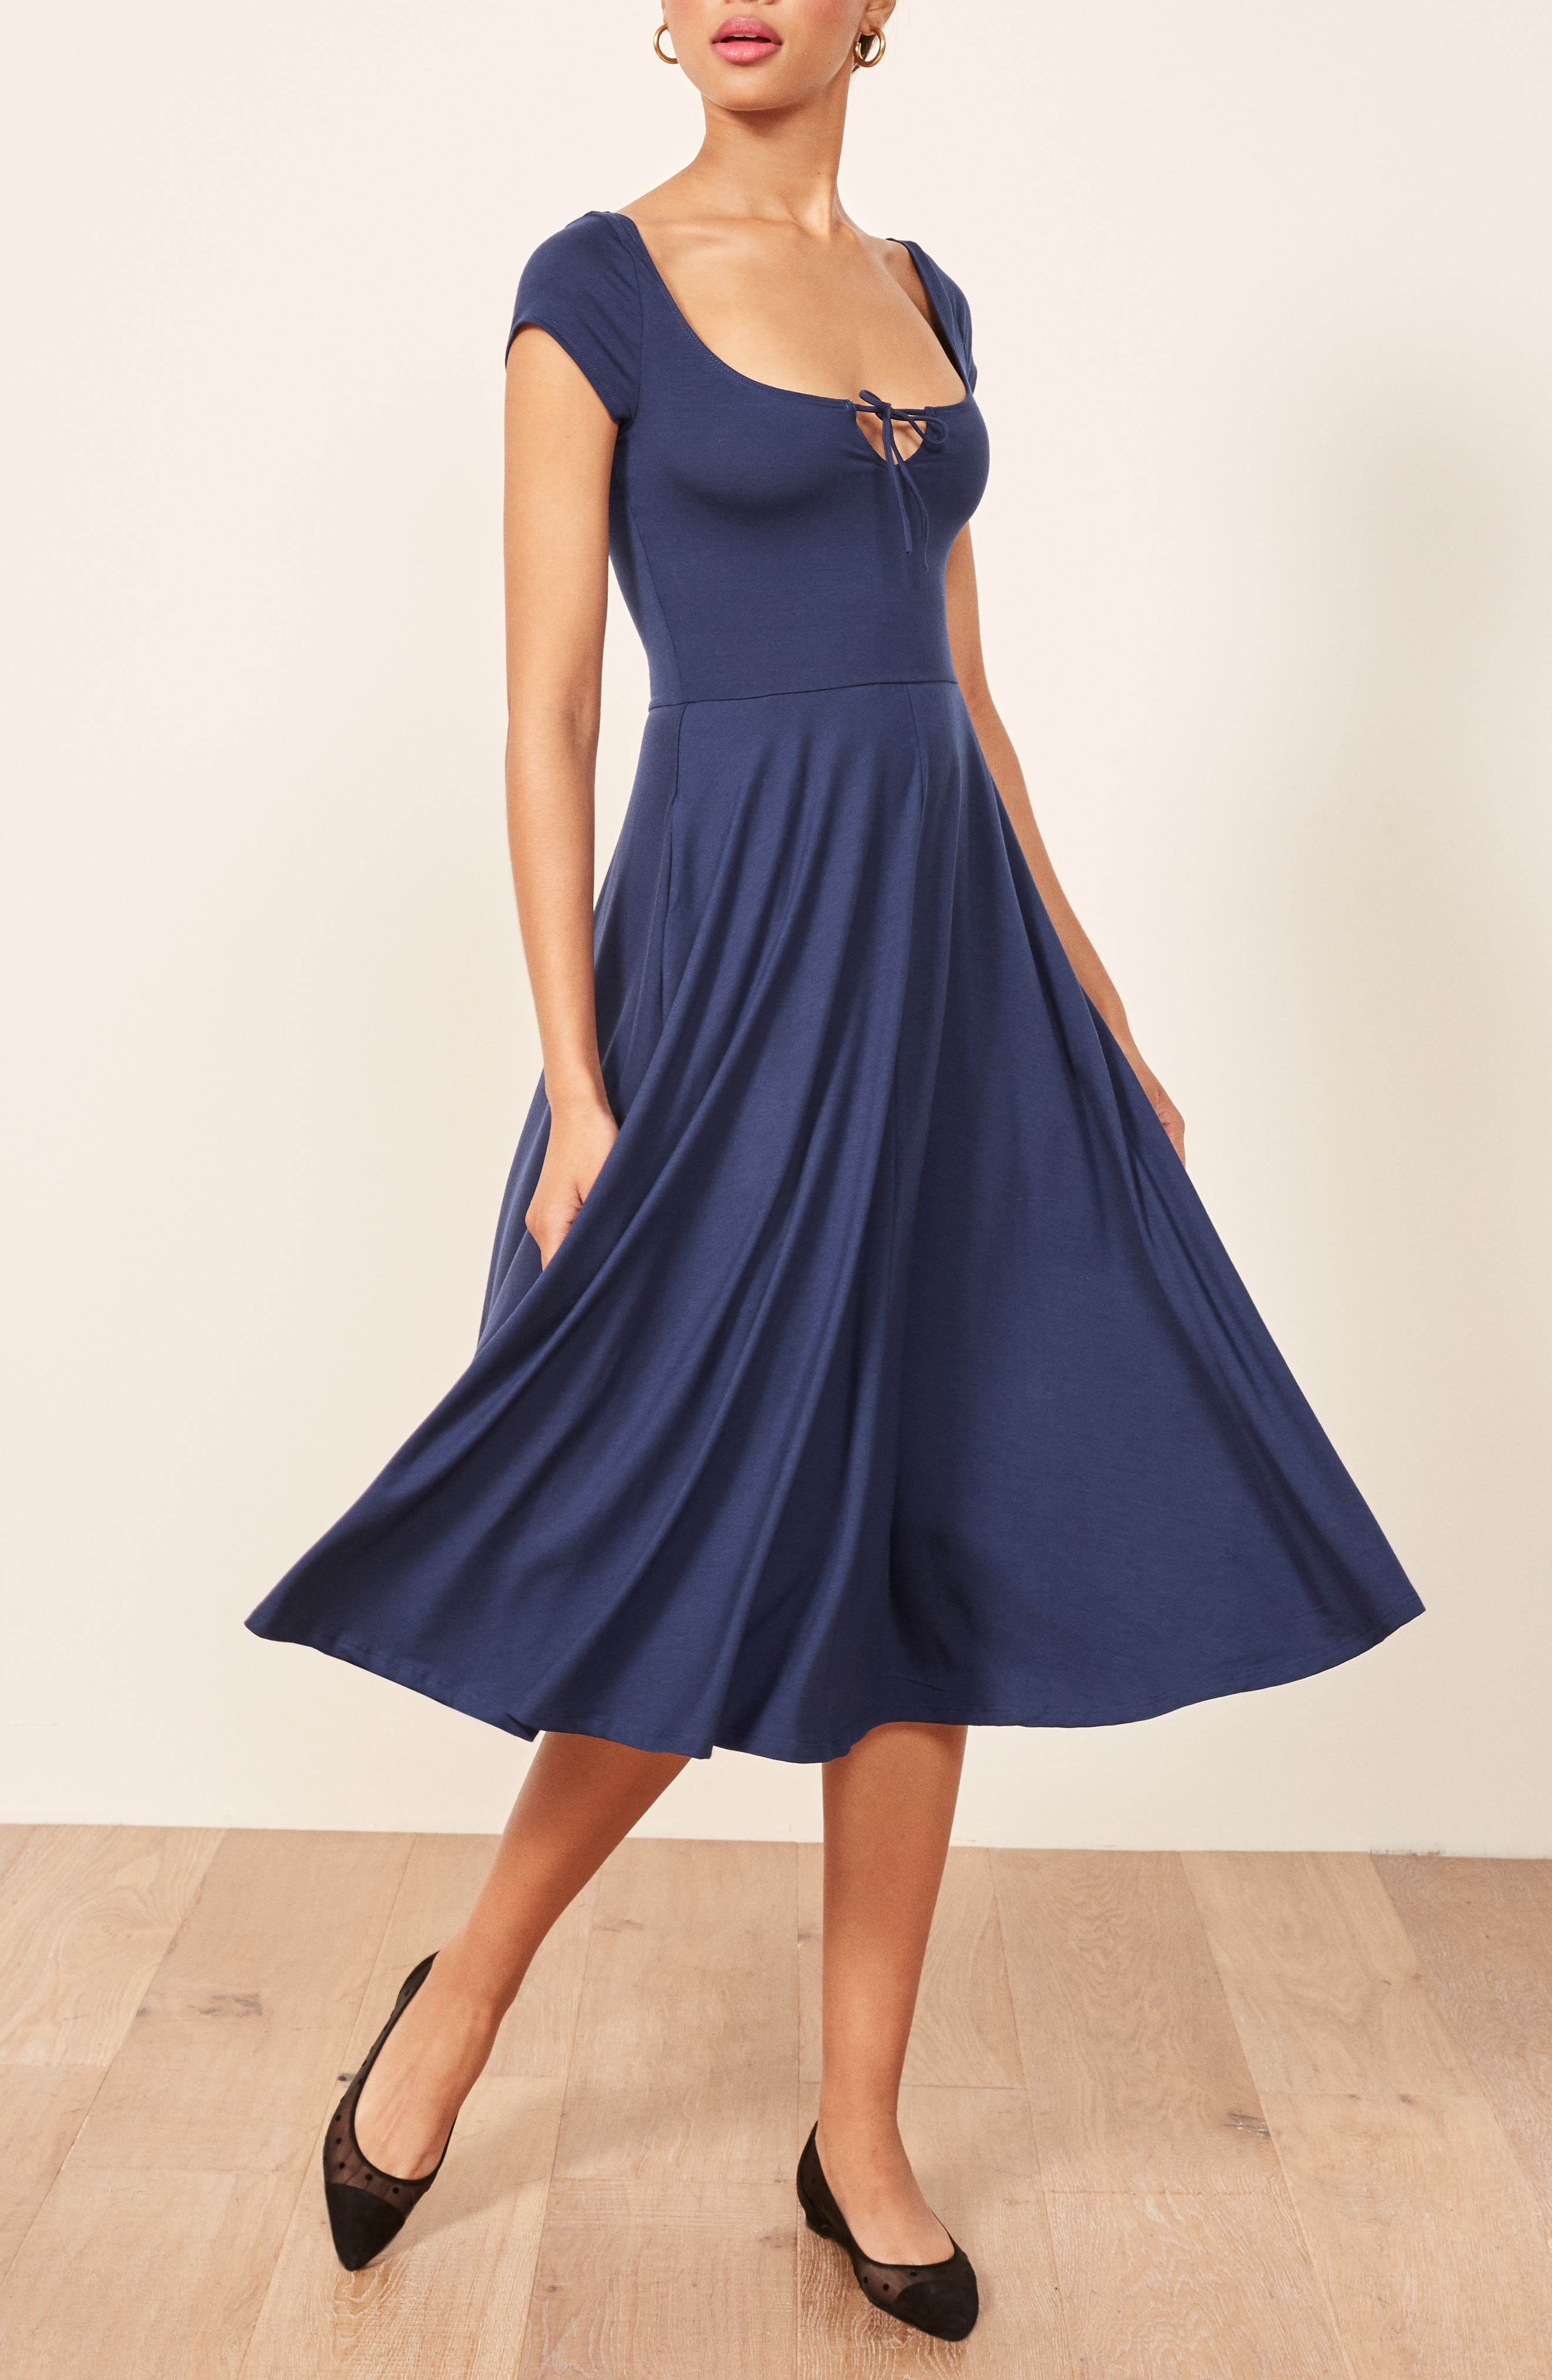 Krista Dress,                             Alternate thumbnail 3, color,                             NAVY